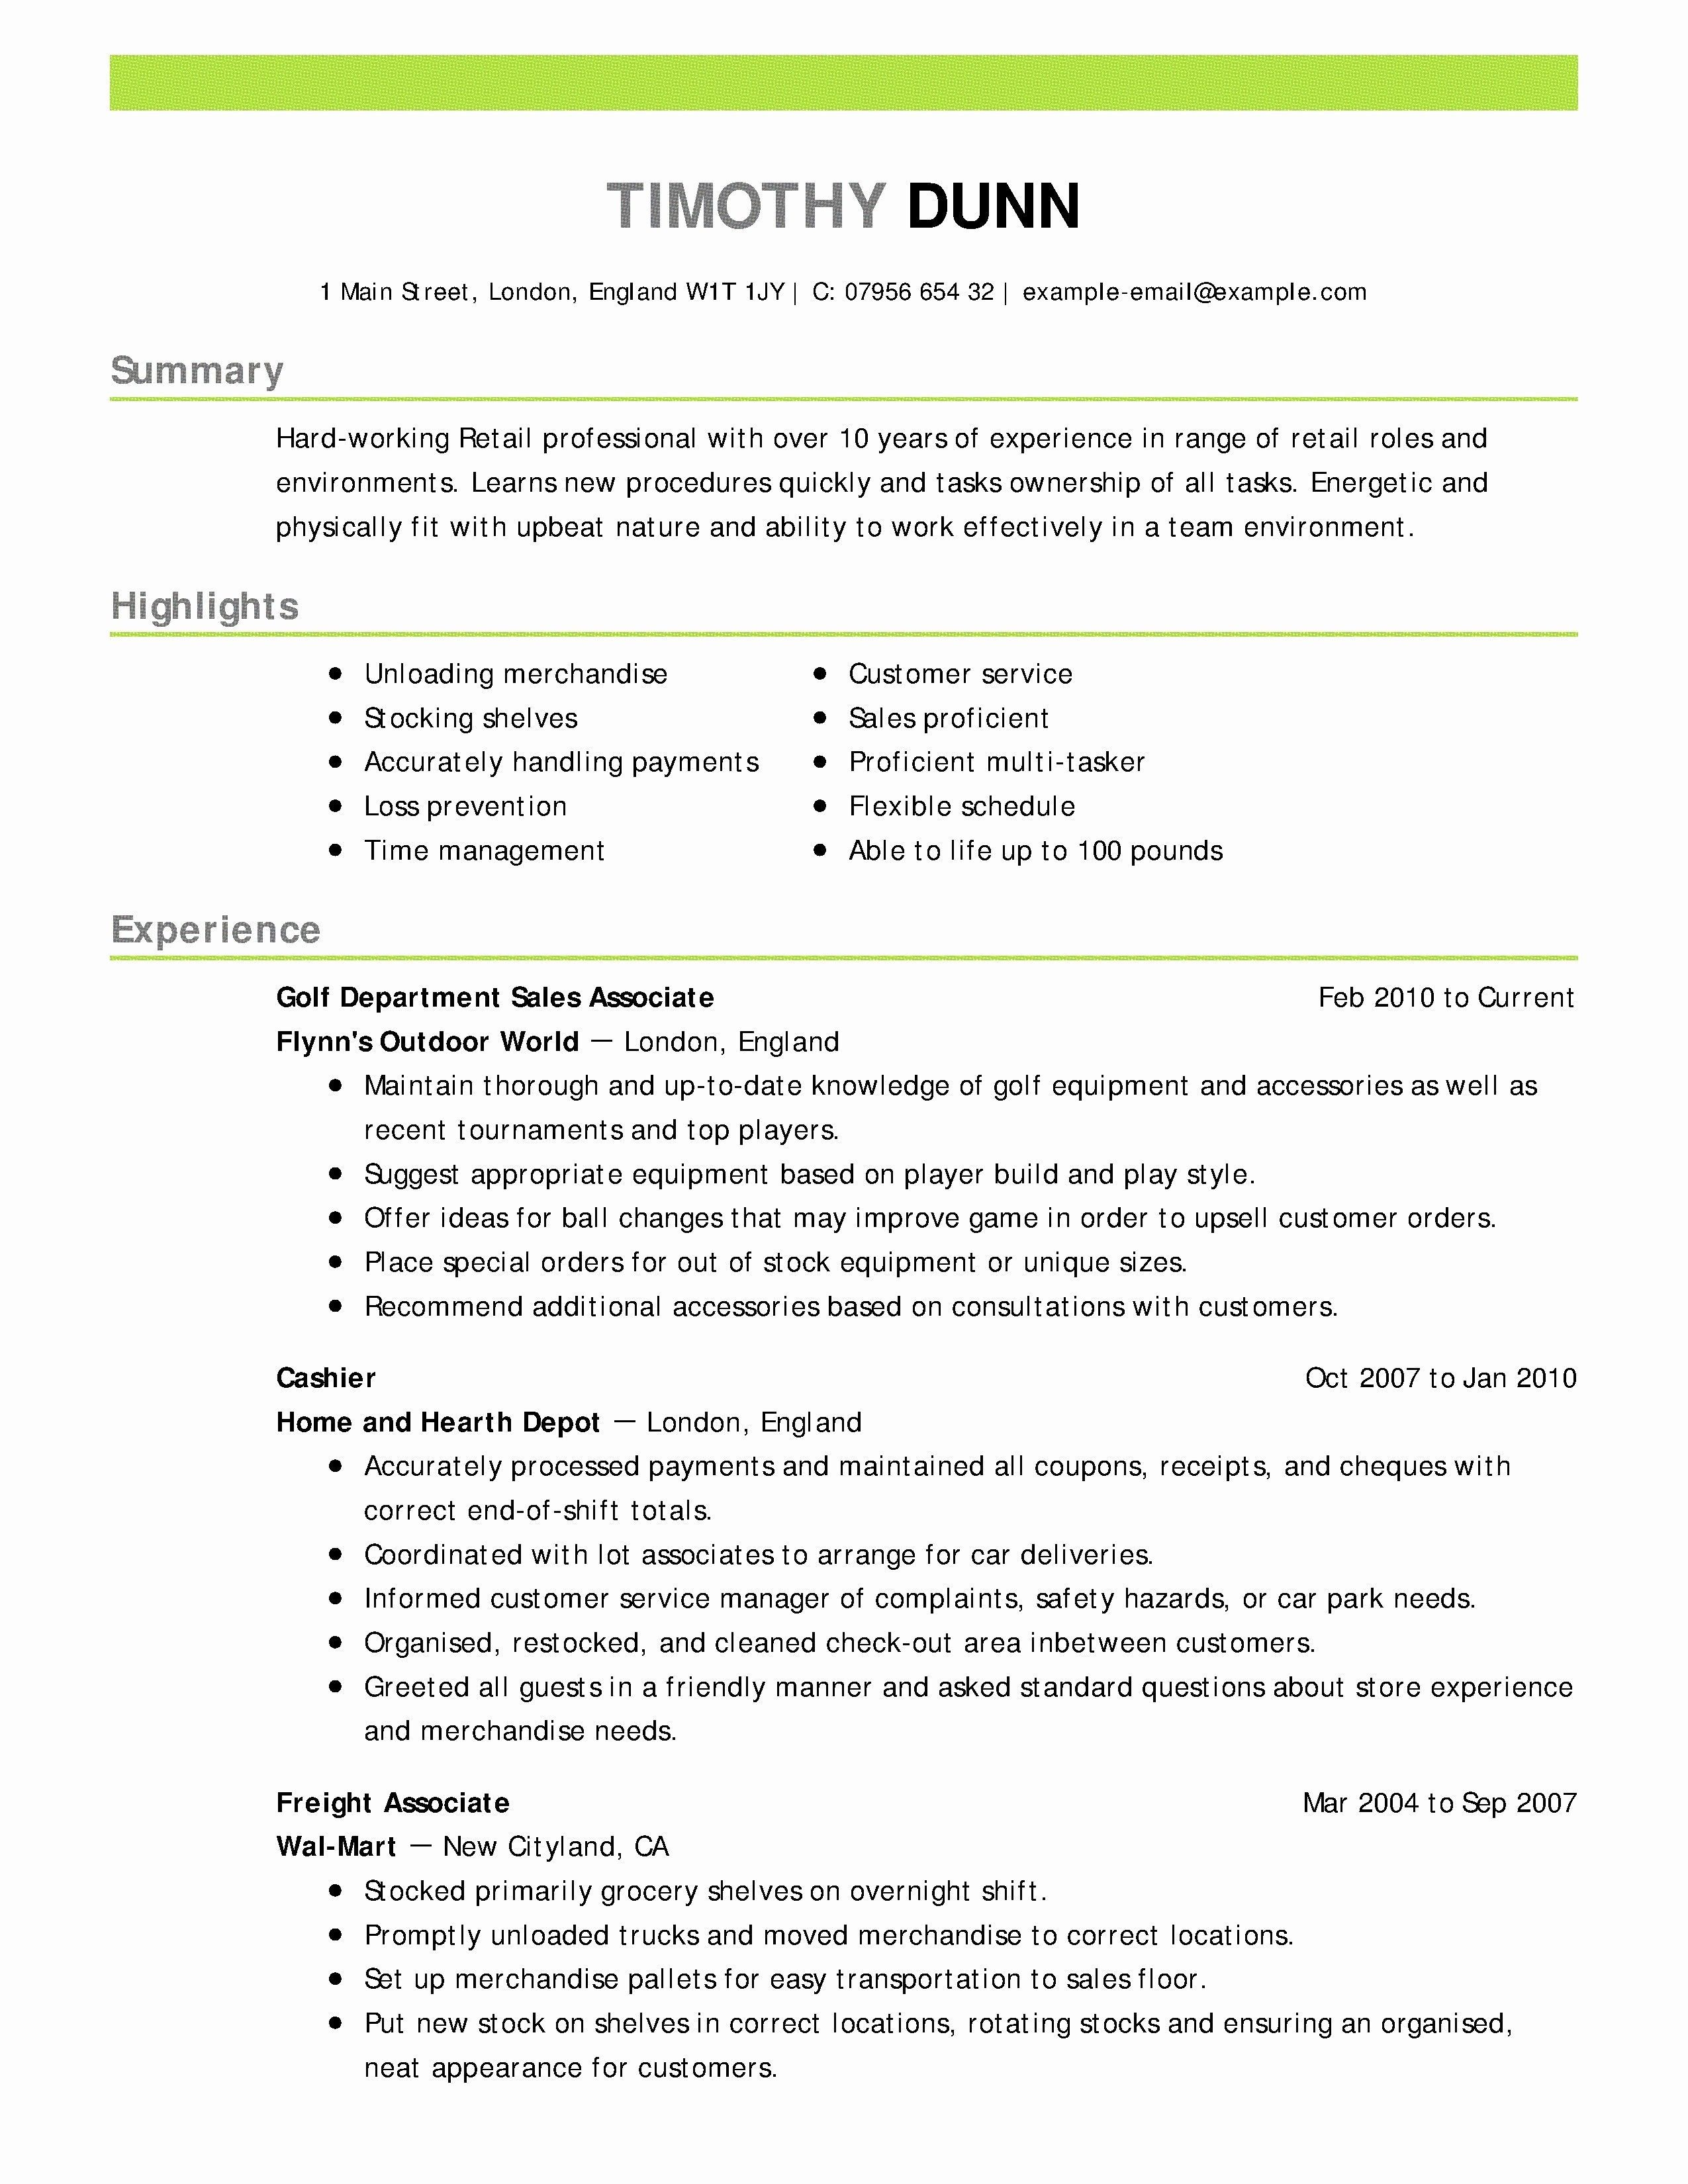 A Good Resume Example 2019 75